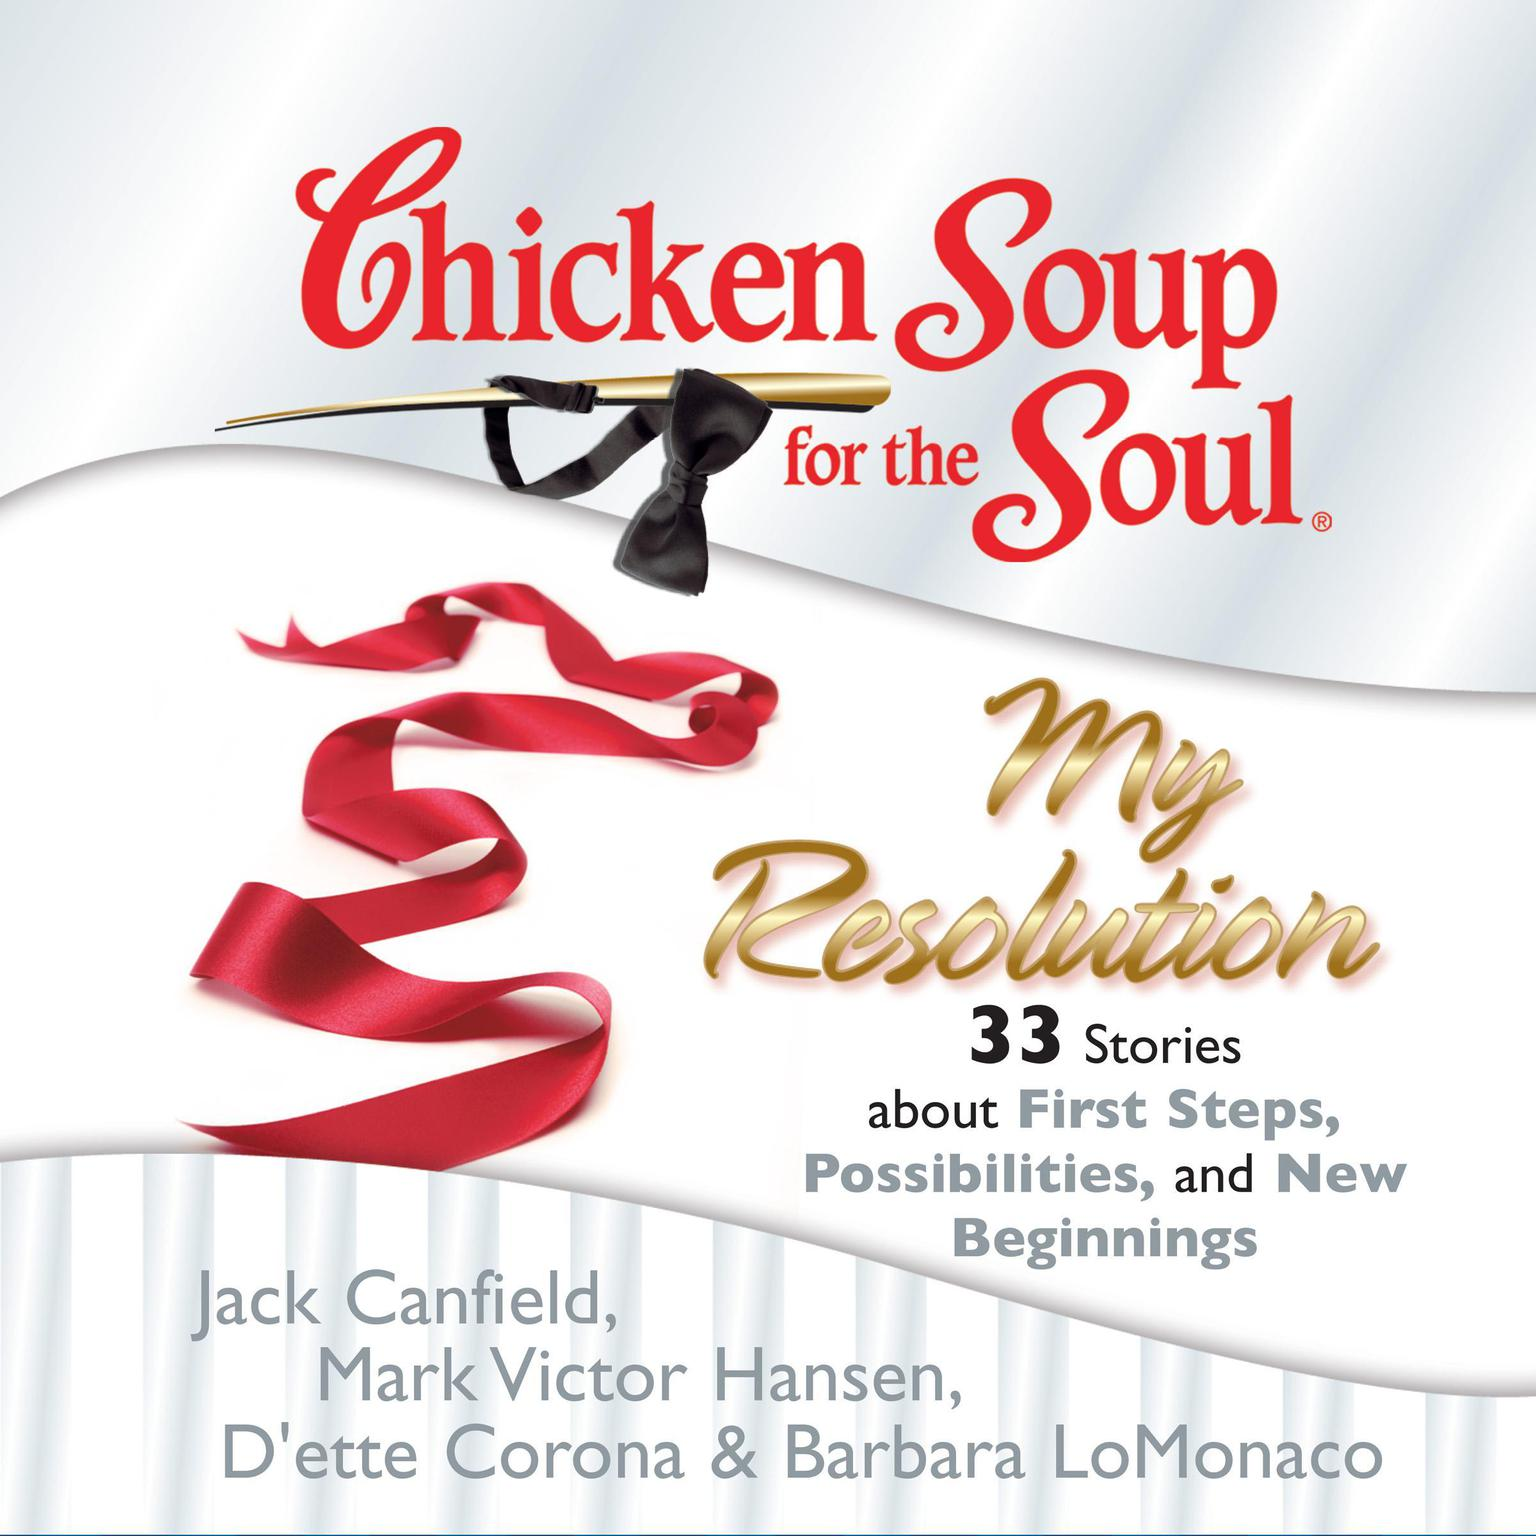 Printable Chicken Soup for the Soul: My Resolution - 33 Stories about First Steps, Possibilities, and New Beginnings Audiobook Cover Art